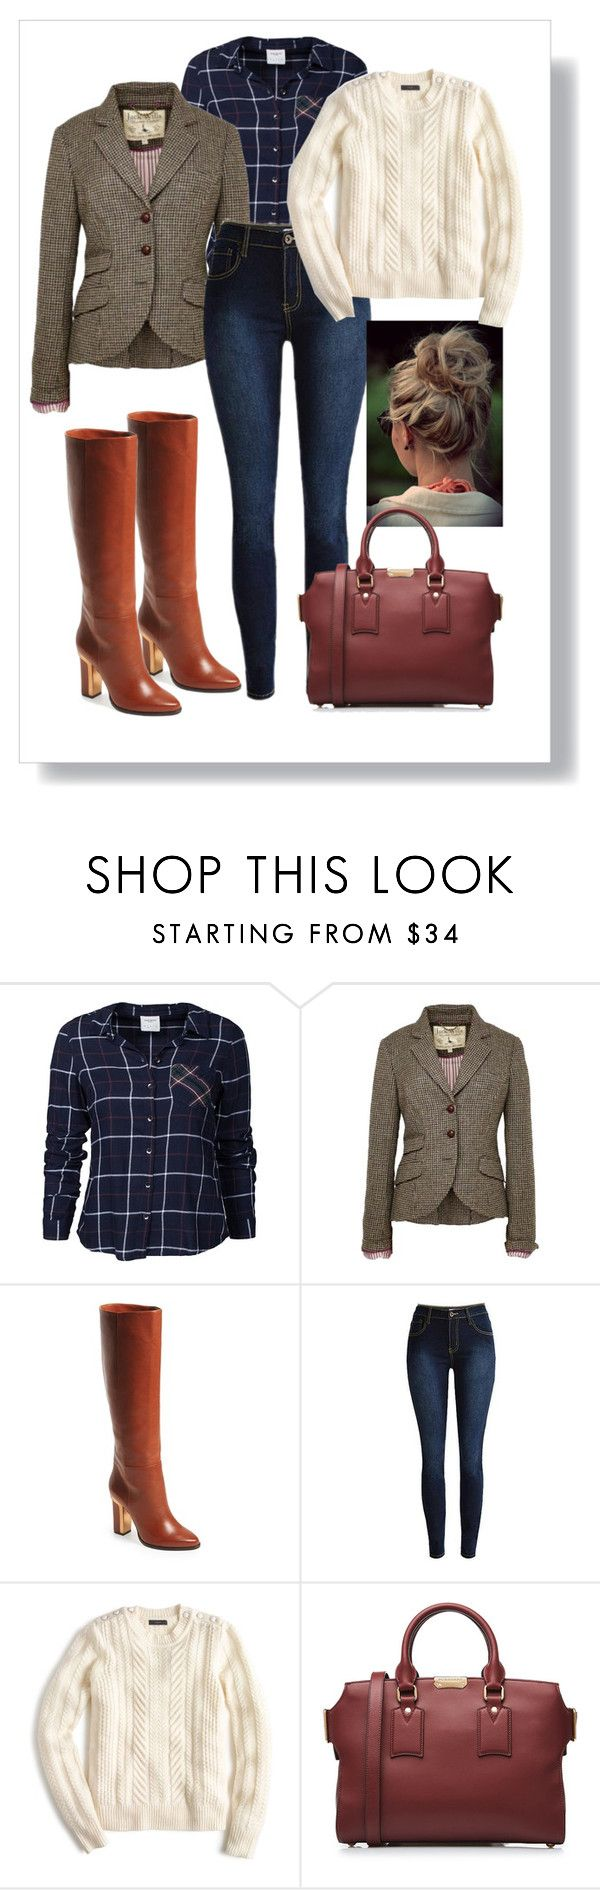 """Day at St Andrews"" by lorilee3131 ❤ liked on Polyvore featuring Vero Moda, Jack Wills, BCBGMAXAZRIA, J.Crew, Burberry, women's clothing, women's fashion, women, female and woman"